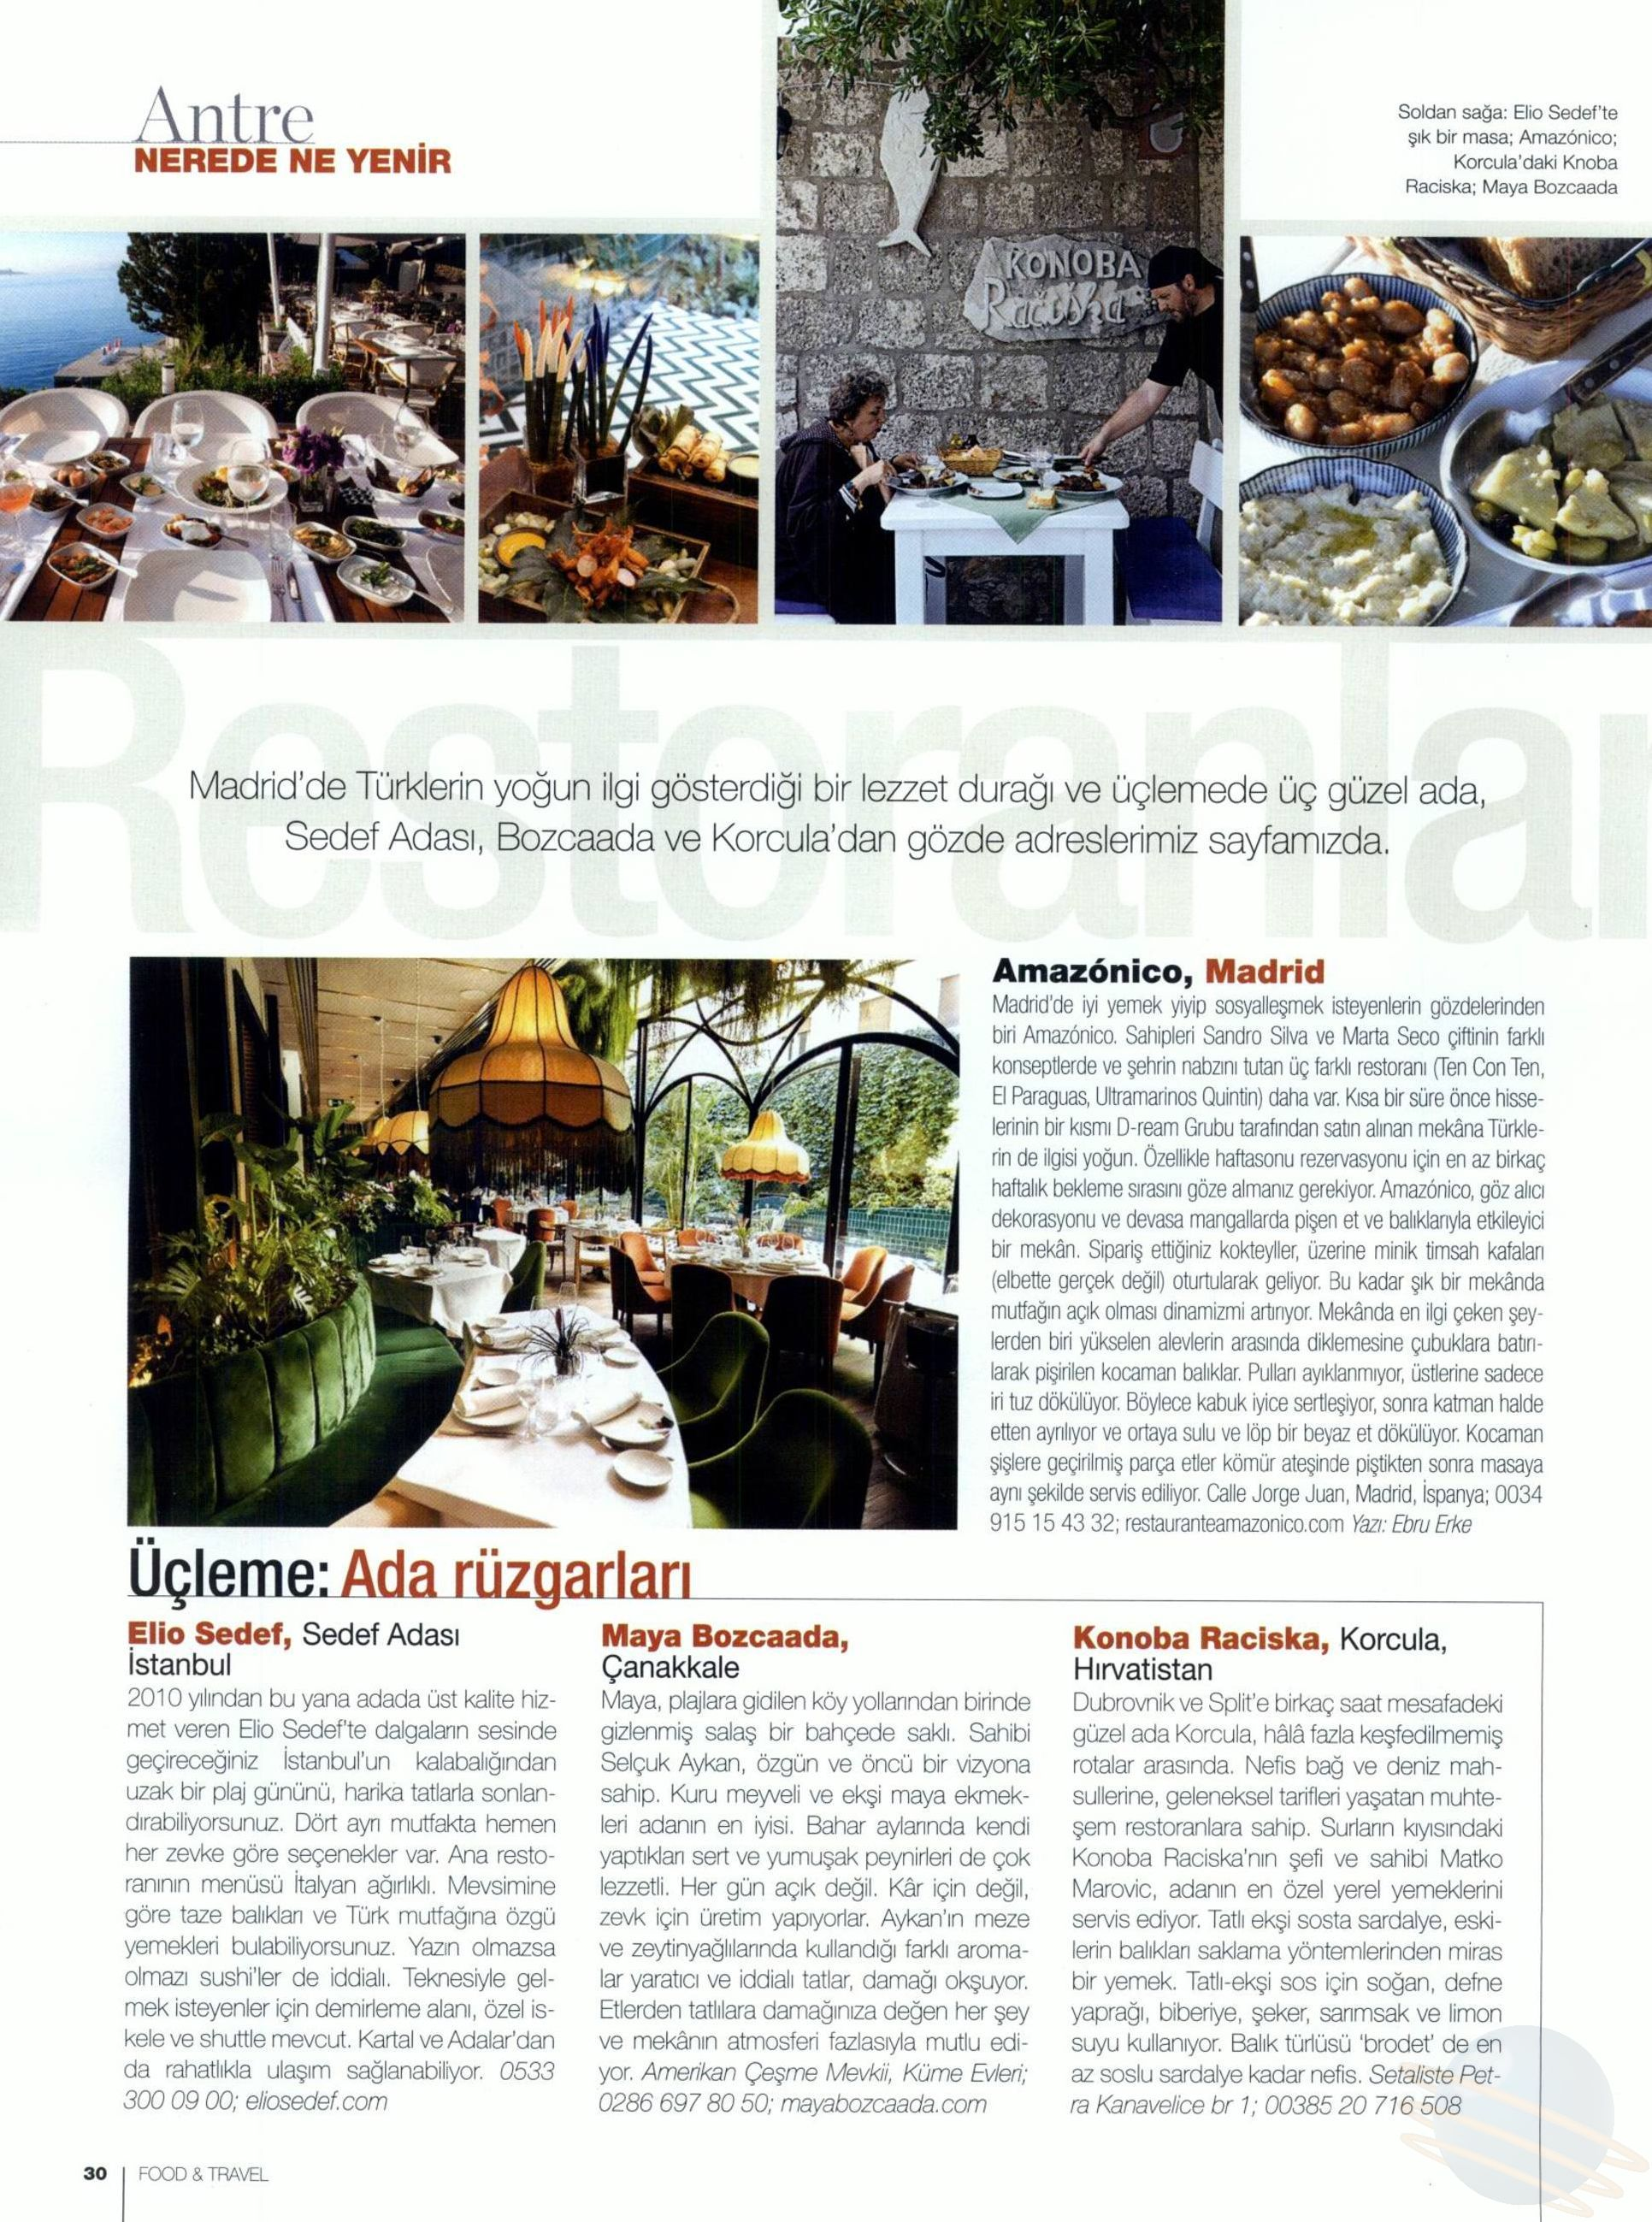 Food and Travel - 01.07.2017